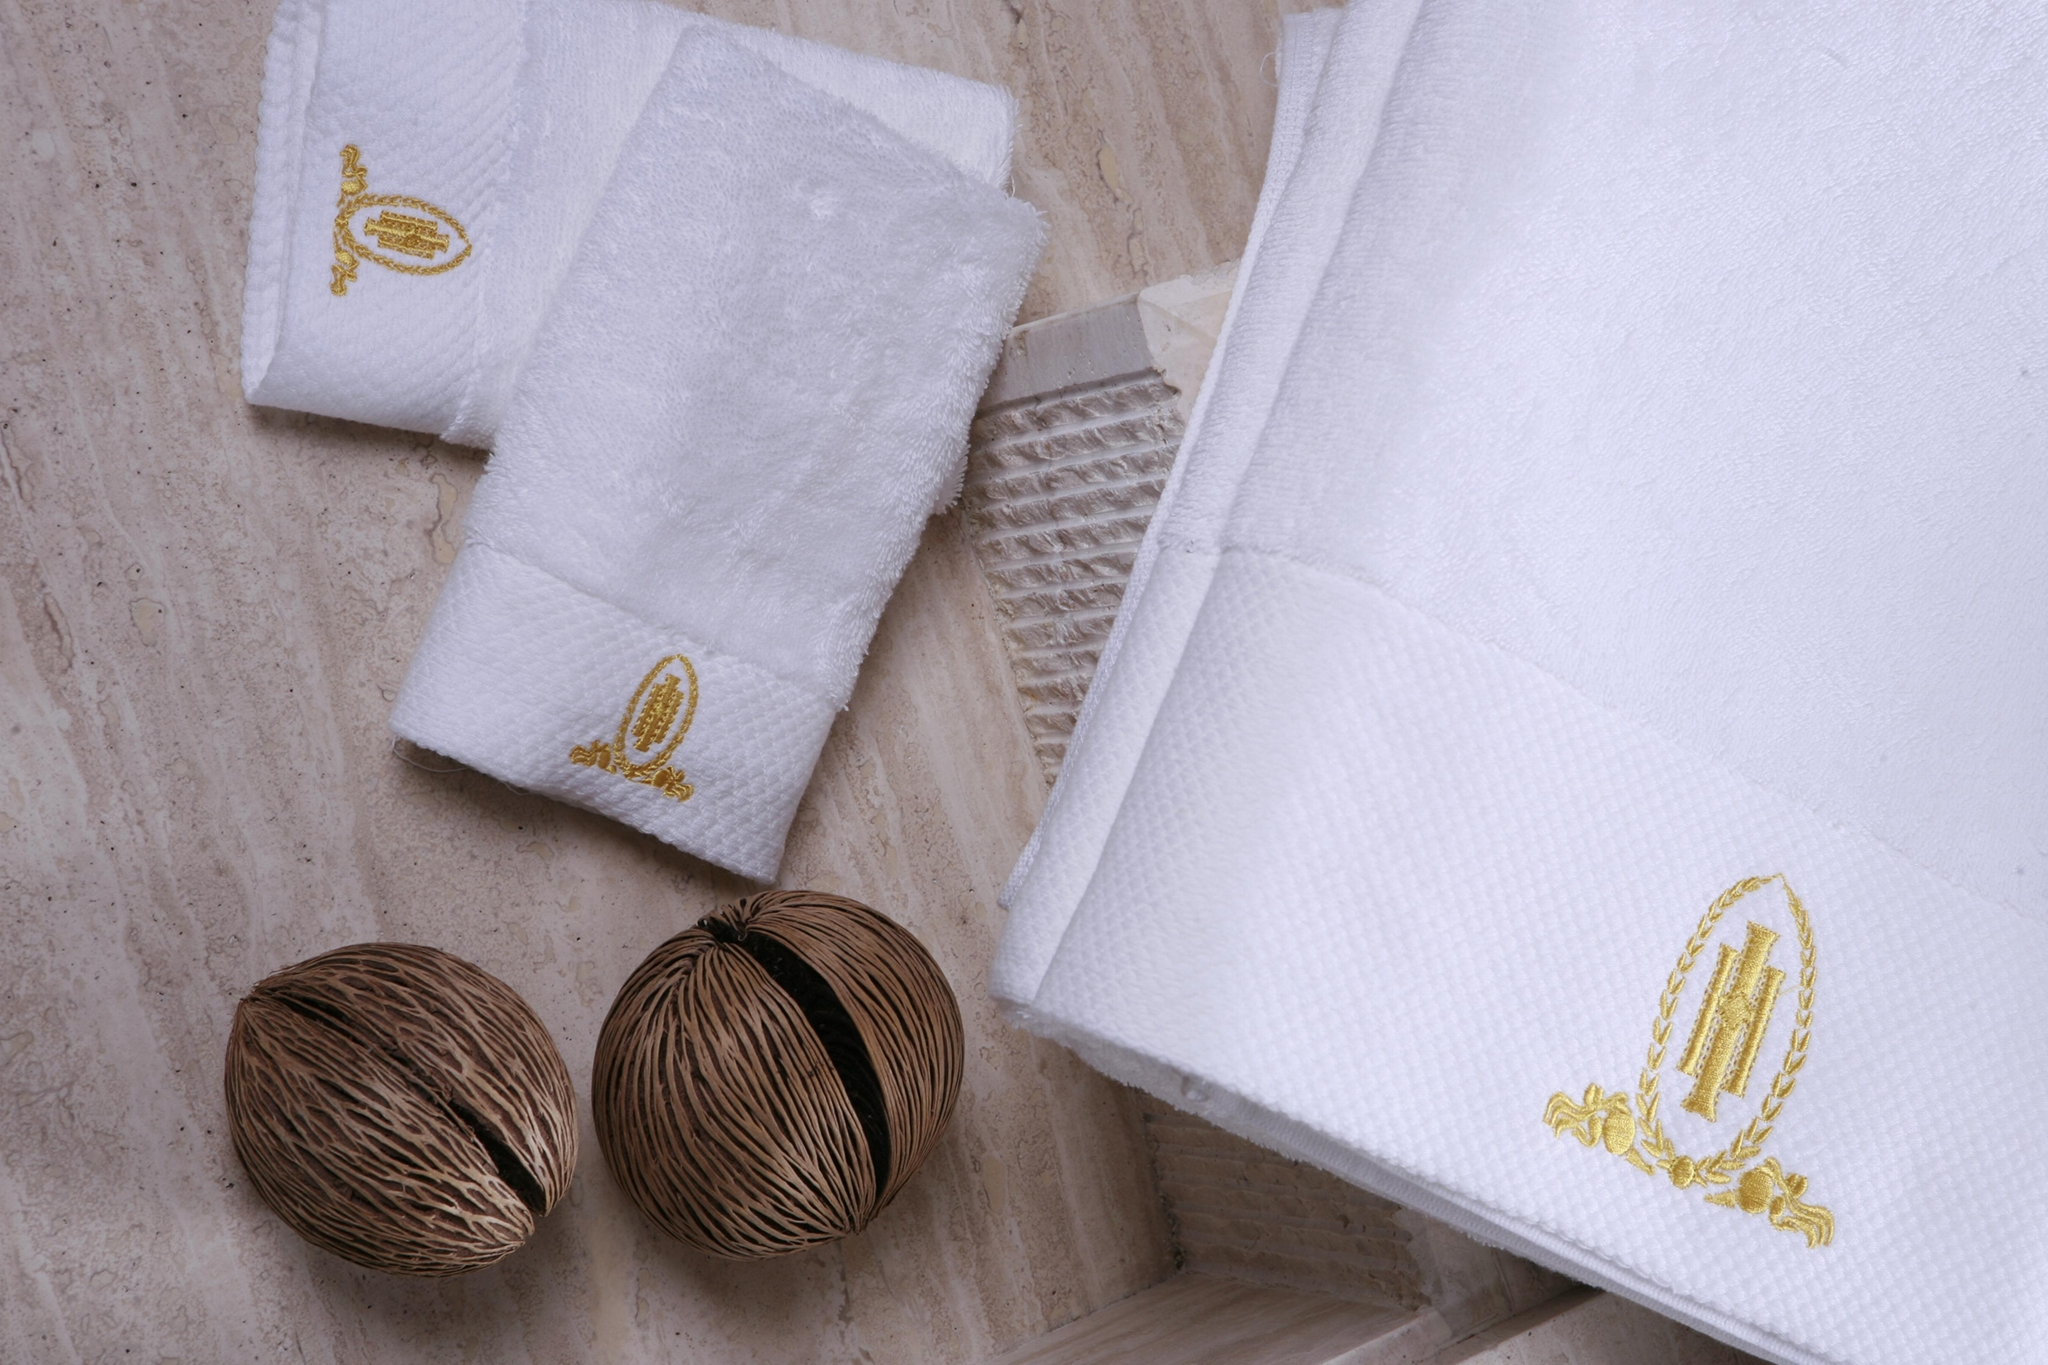 Eliya Luxury Hotel Terry Cotton Hand Towel Hotel Terry Cotton Face Cloth 2